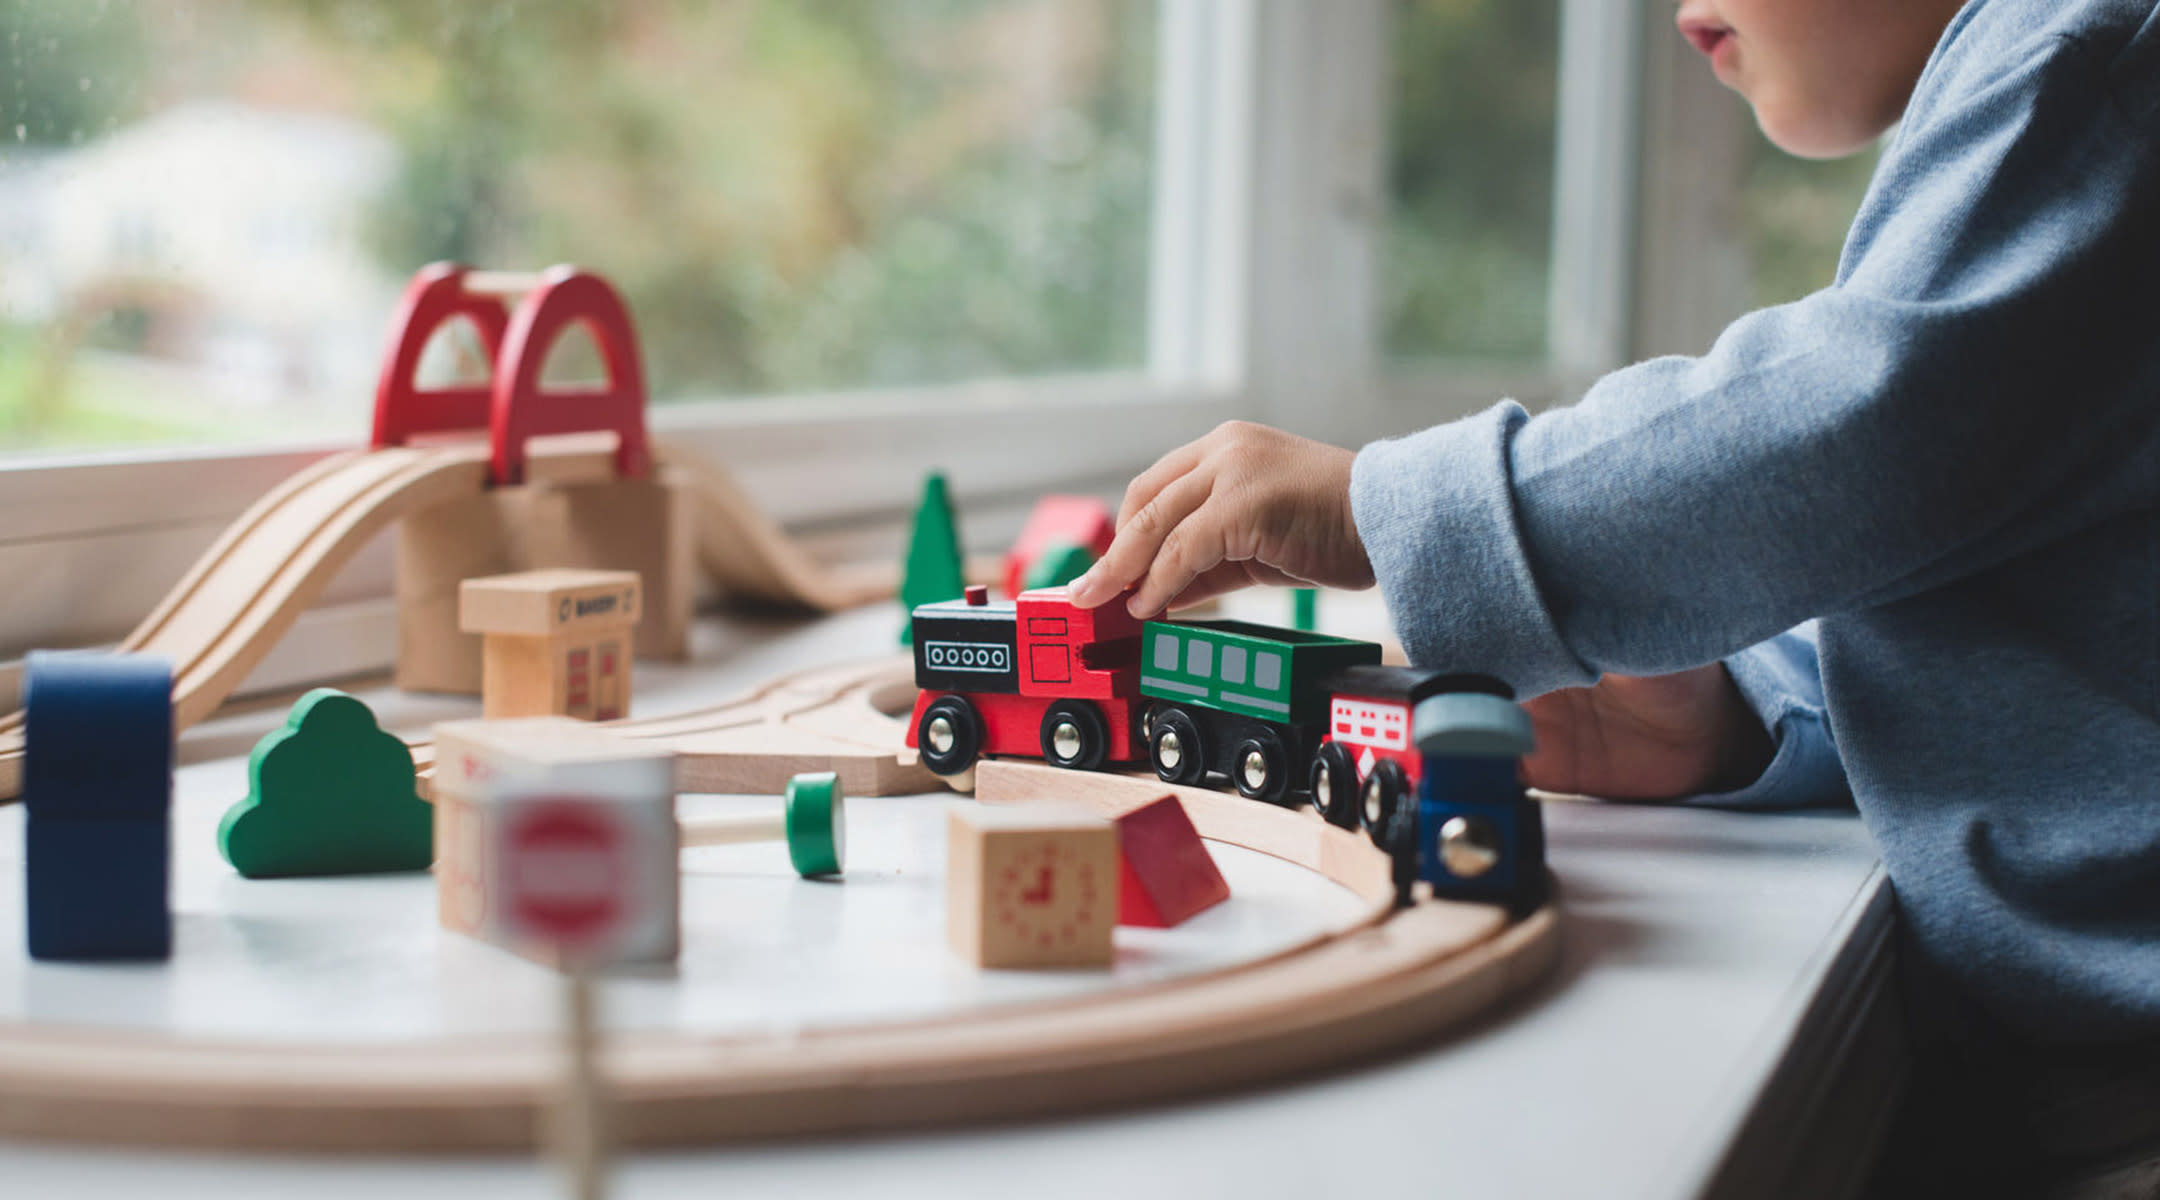 toddler plays with toy train